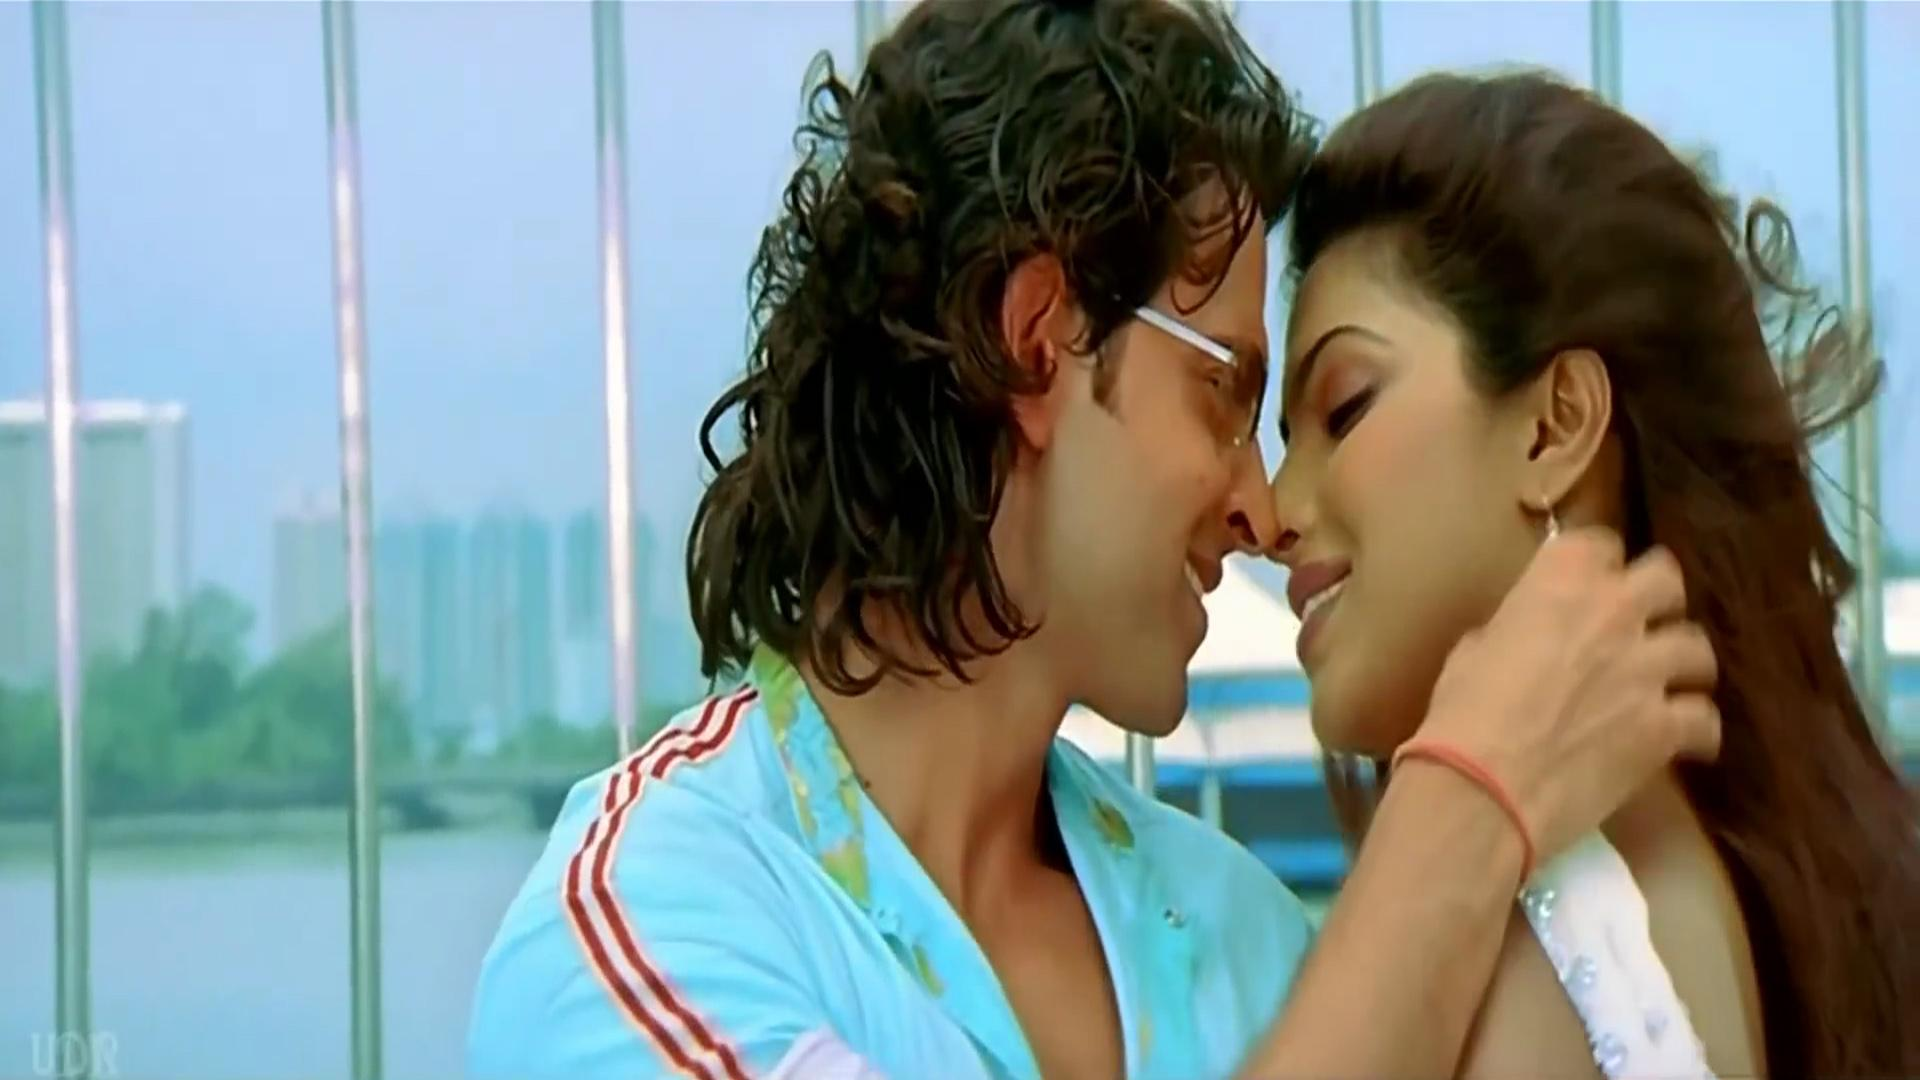 Hrithik Roshan Hd Wallpapers Krrish 3 Group